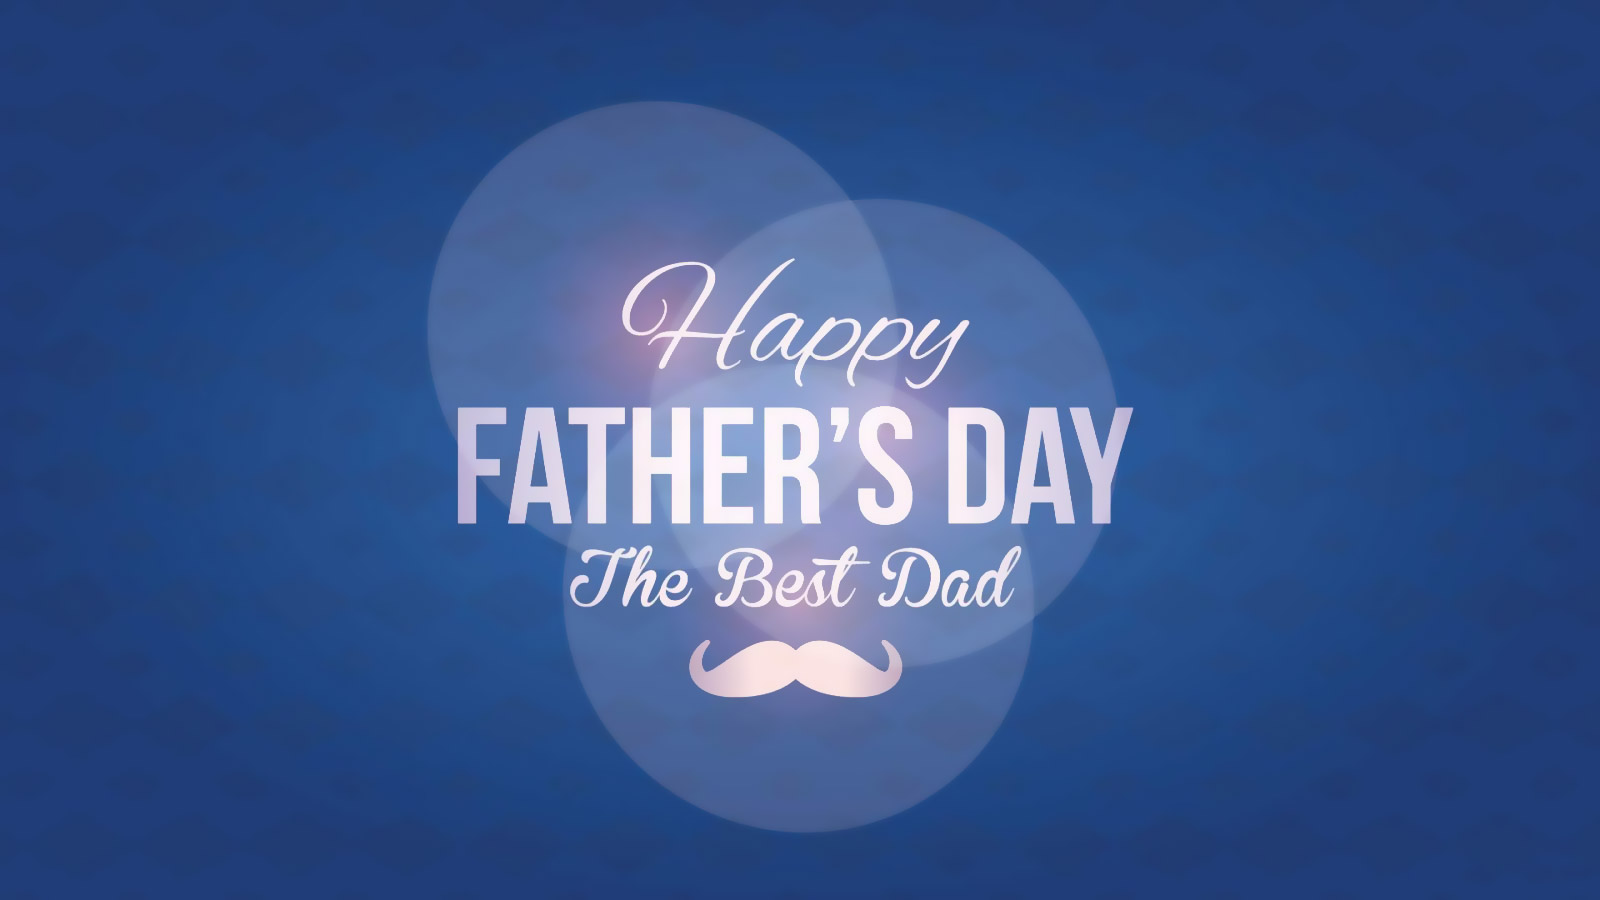 Happy Fathers Day 2018 Quotes Sayings Wishes Messages Atulhost